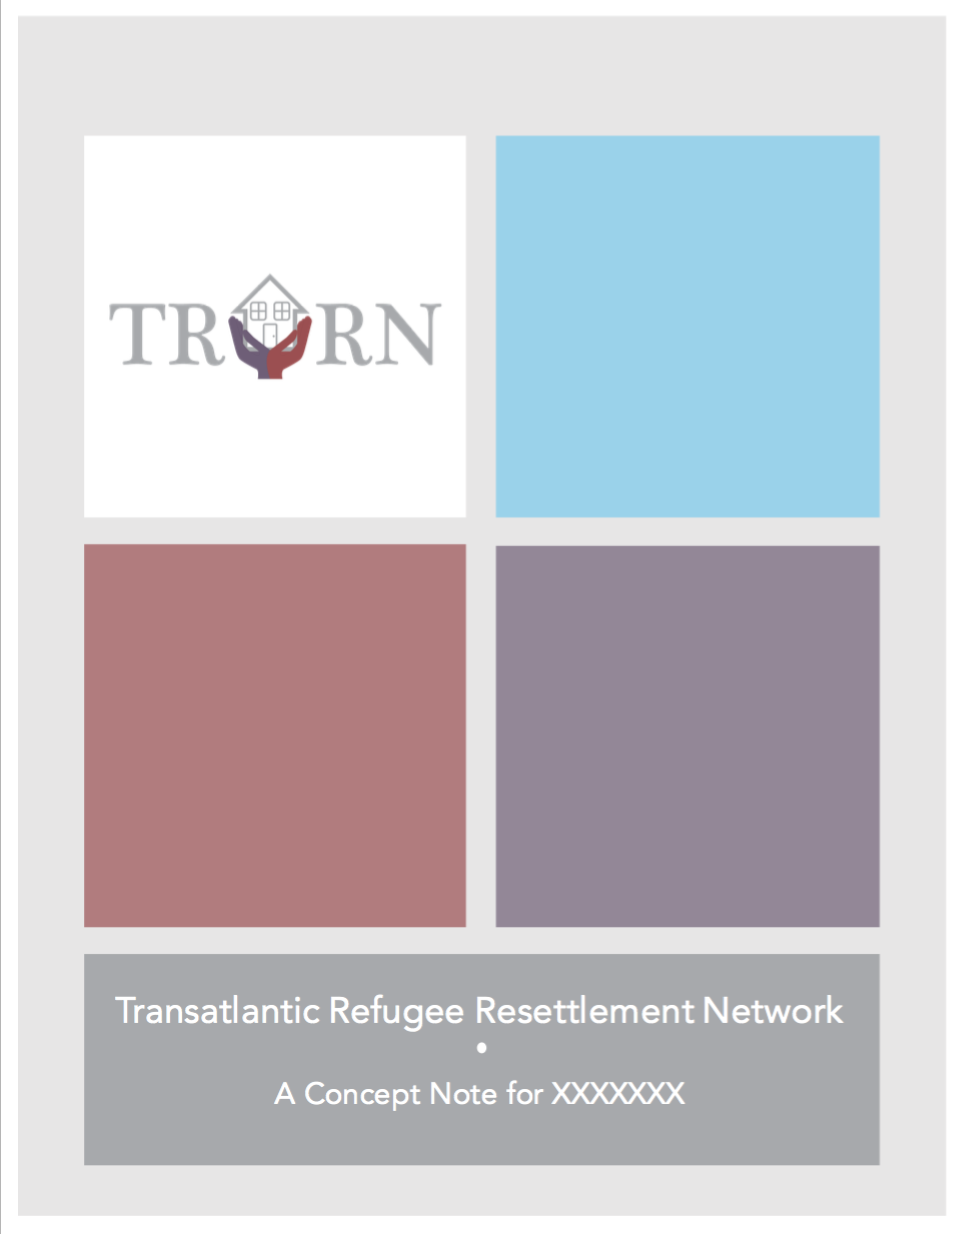 A Concept Note for the TRRN - click on the image to open the document.